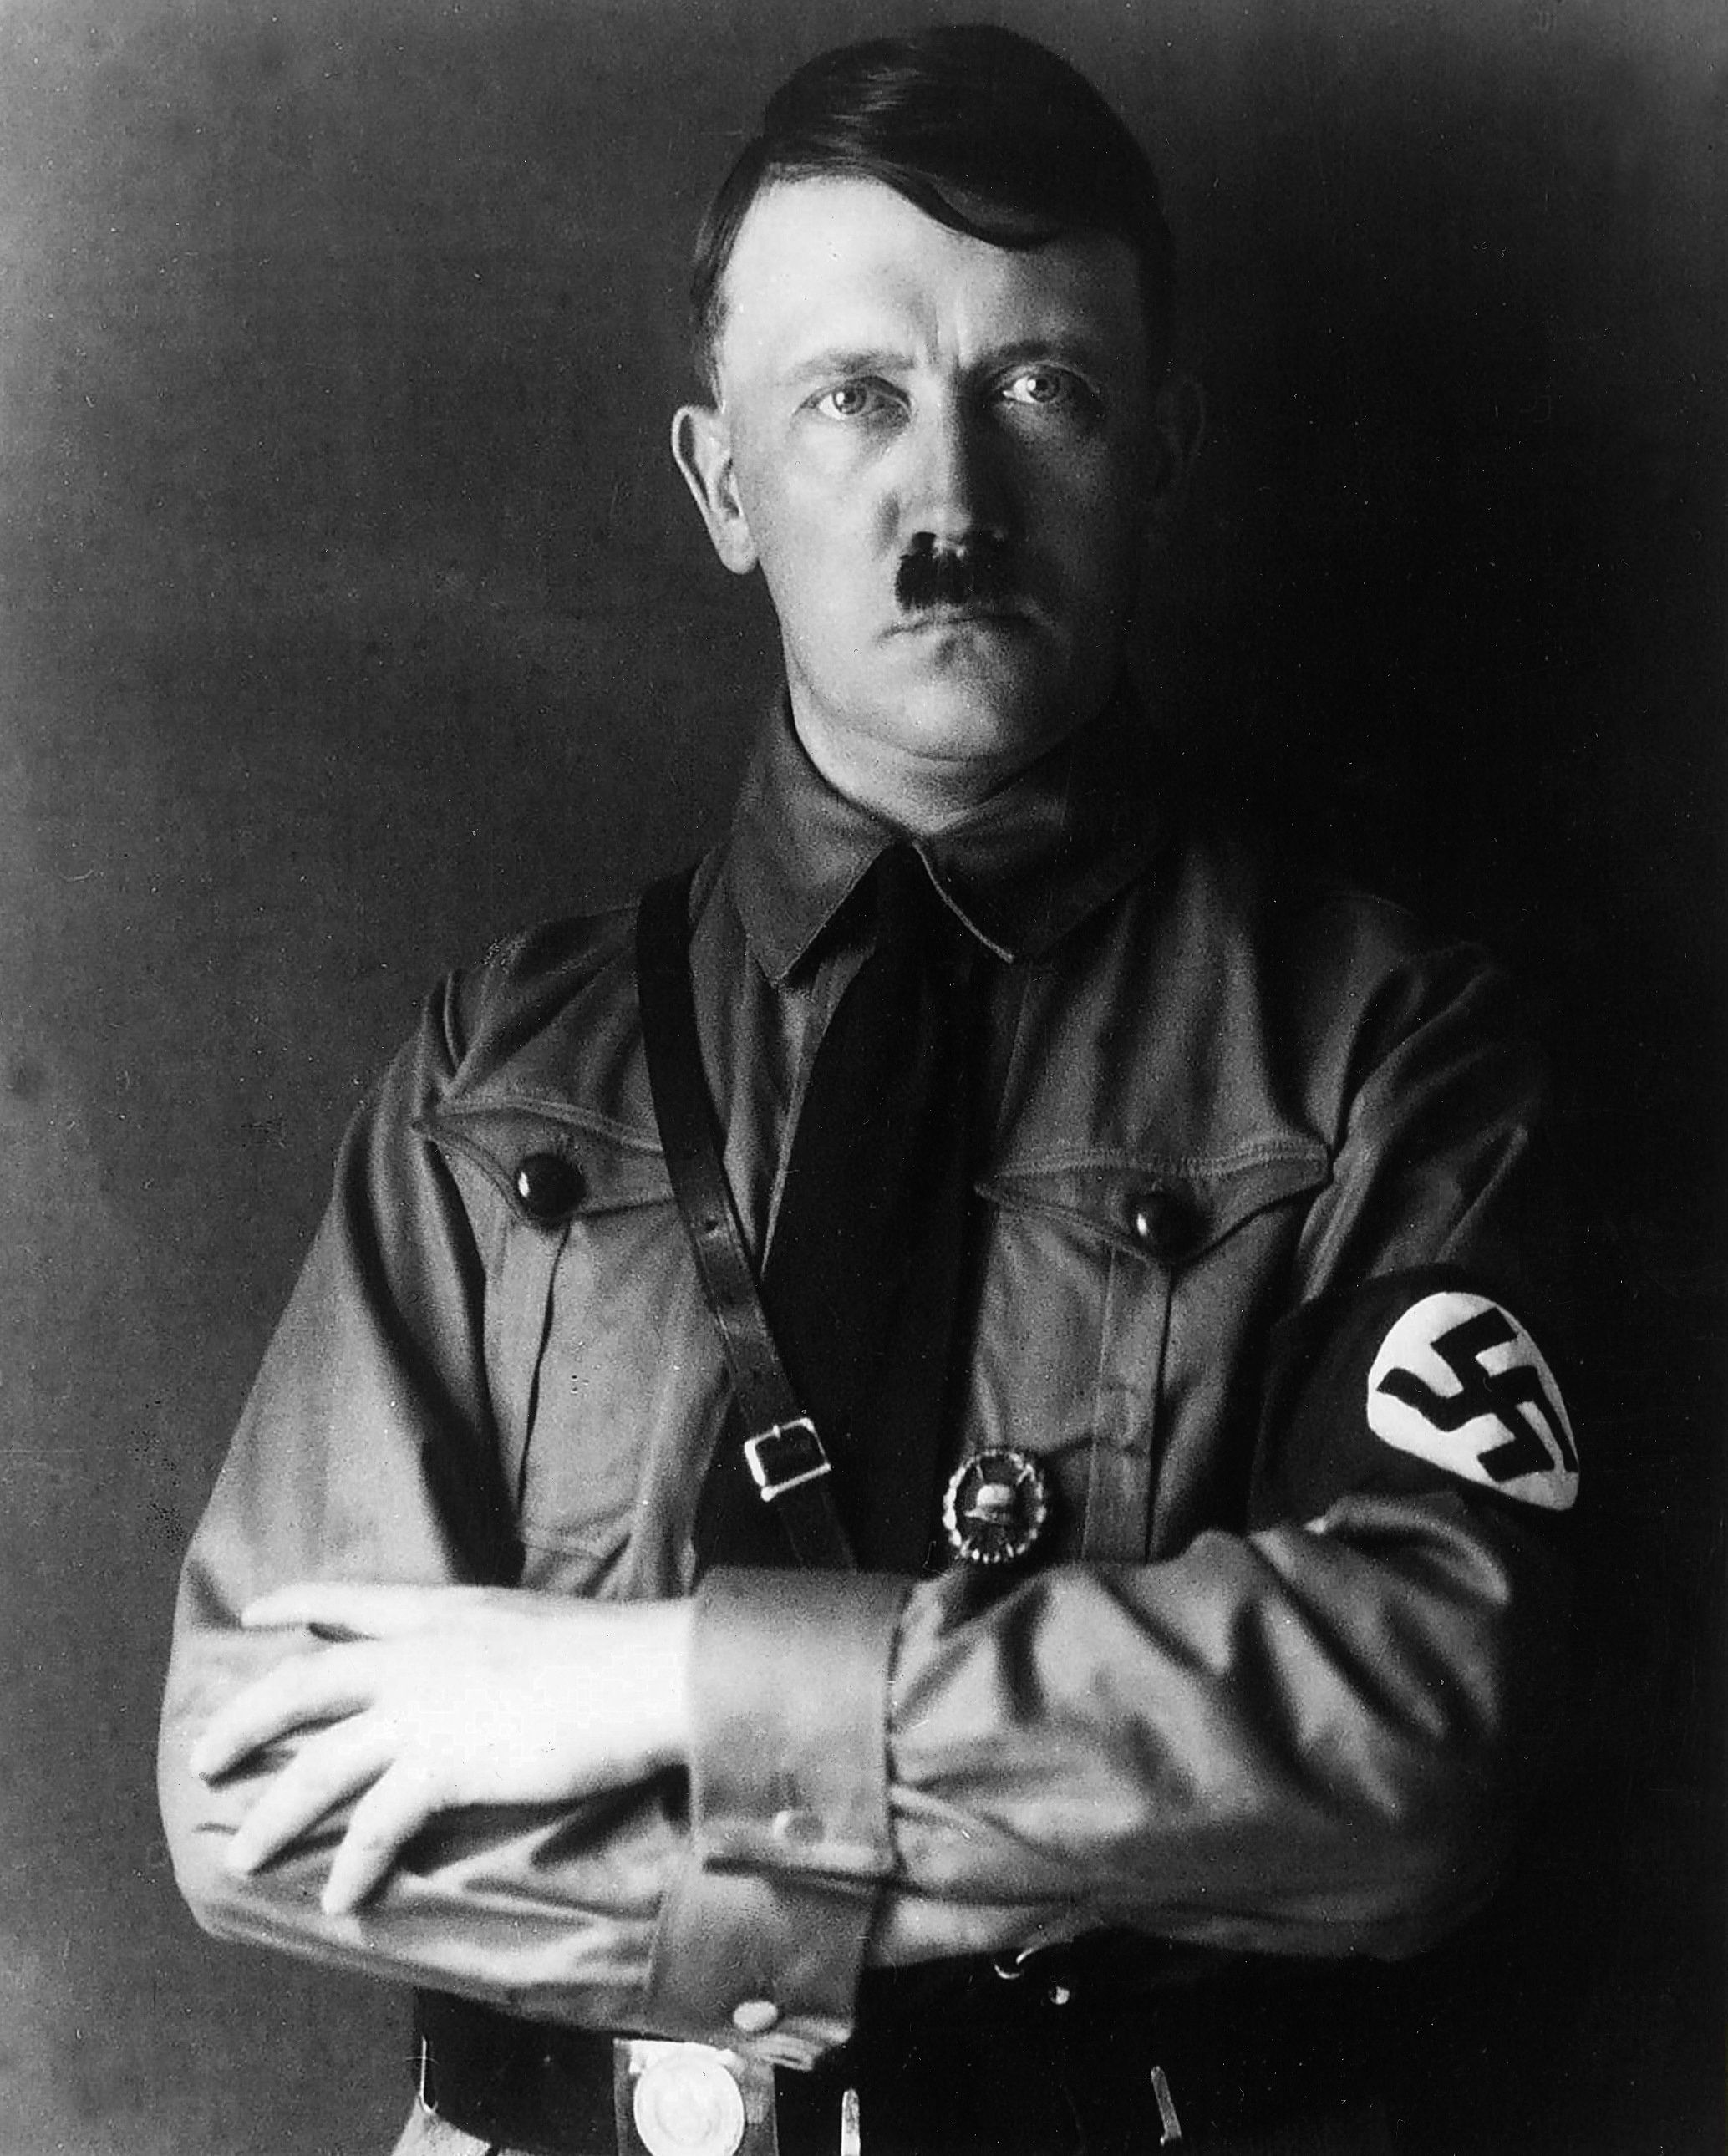 (GERMANY OUT) (*20.04.1889-30.04.1945+), Politiker, NSDAP, D, - in SA-Uniform, - vermutlich 1932   (Photo by ullstein bild via Getty Images)